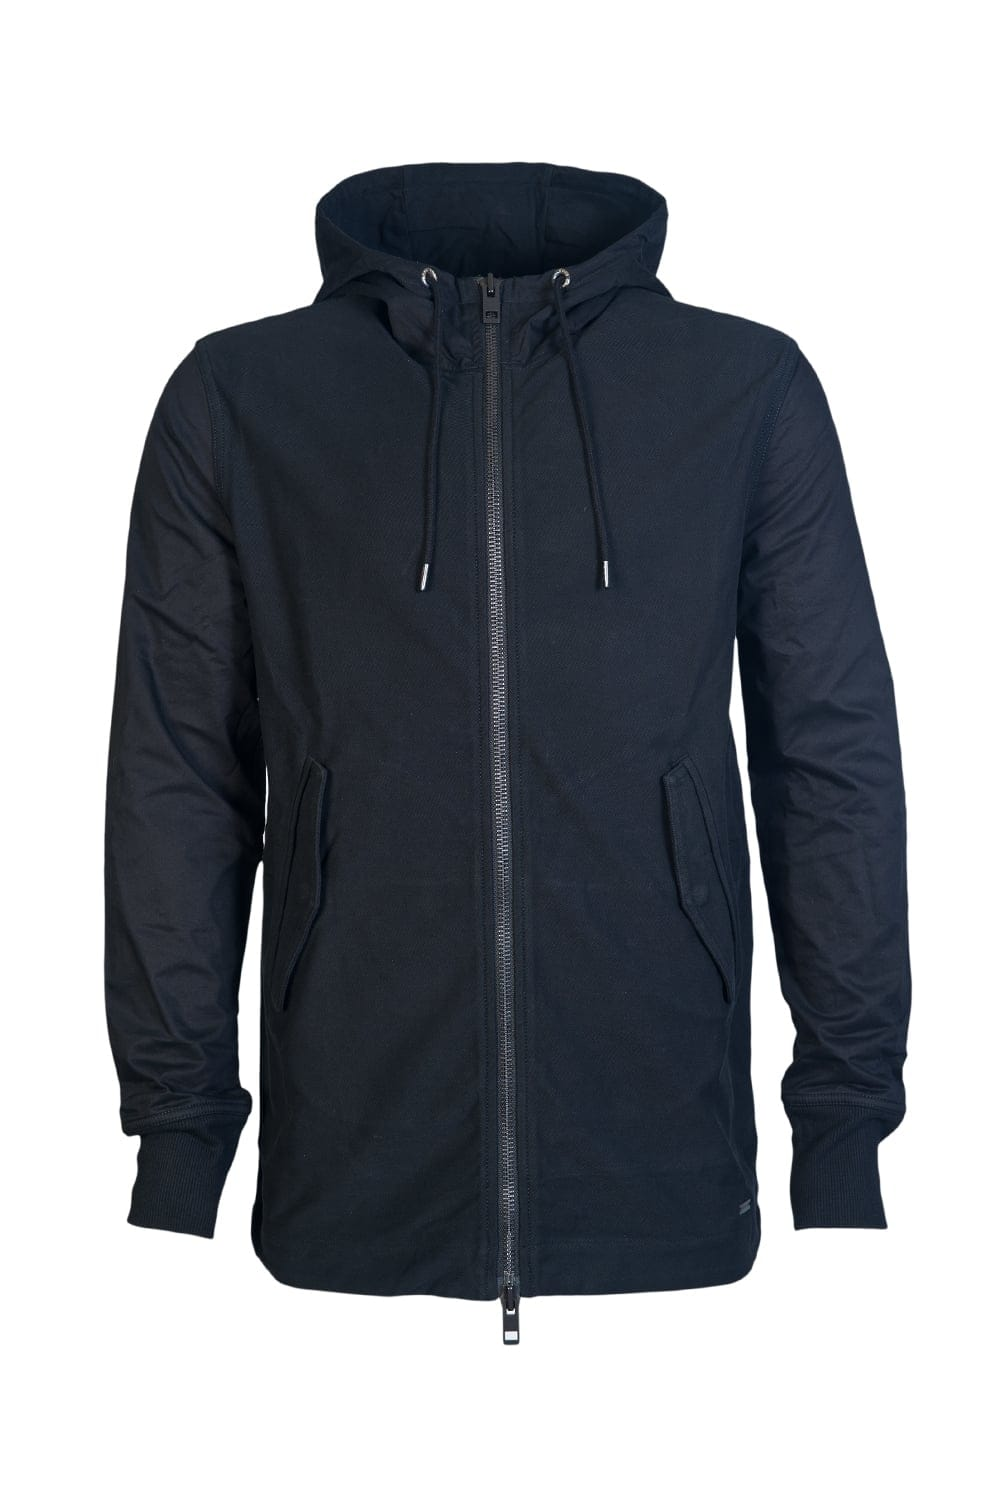 hugo boss jacket hooded zoot 50315483 clothing from sage clothing uk. Black Bedroom Furniture Sets. Home Design Ideas